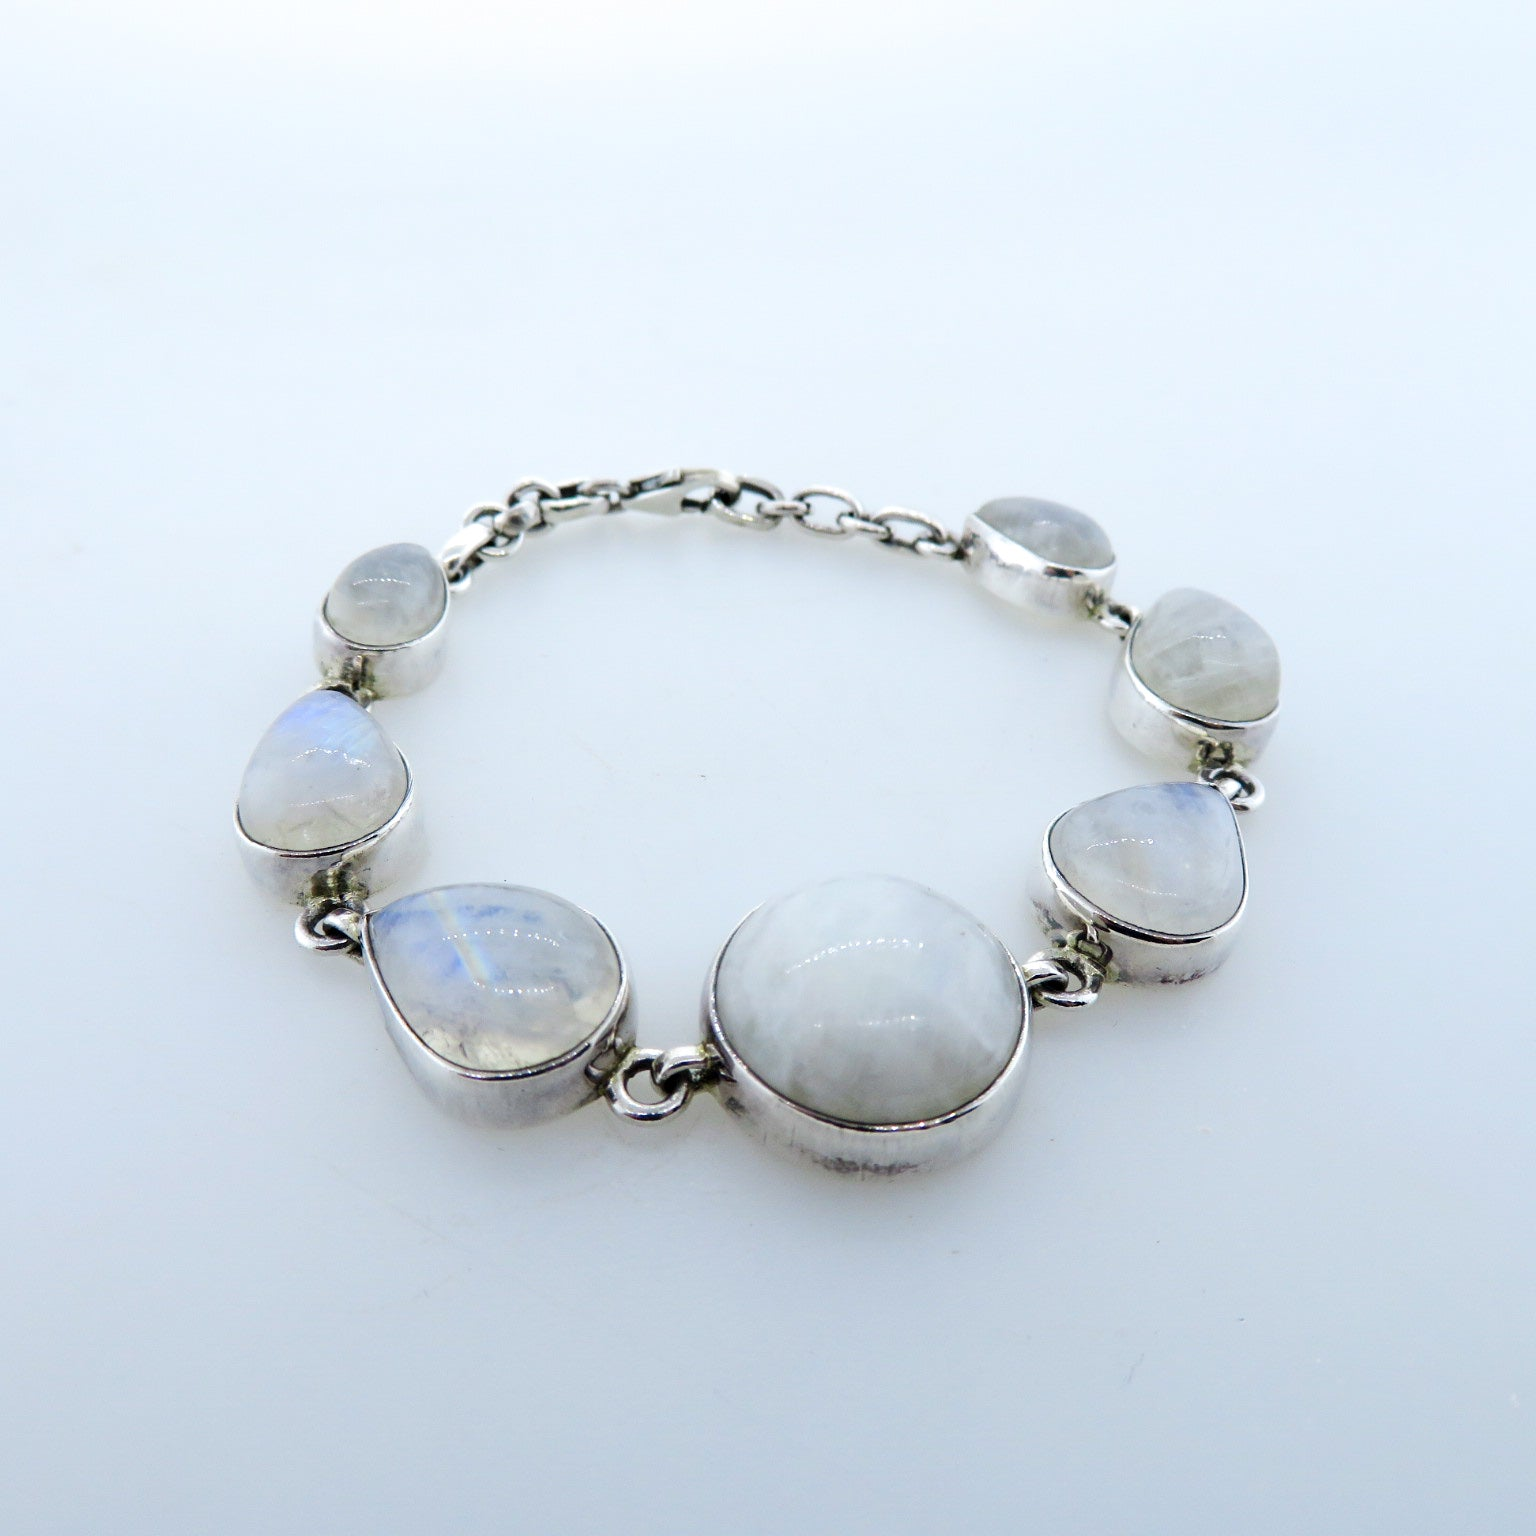 Rainbow Moon Stone Bracelet with Sterling Silver